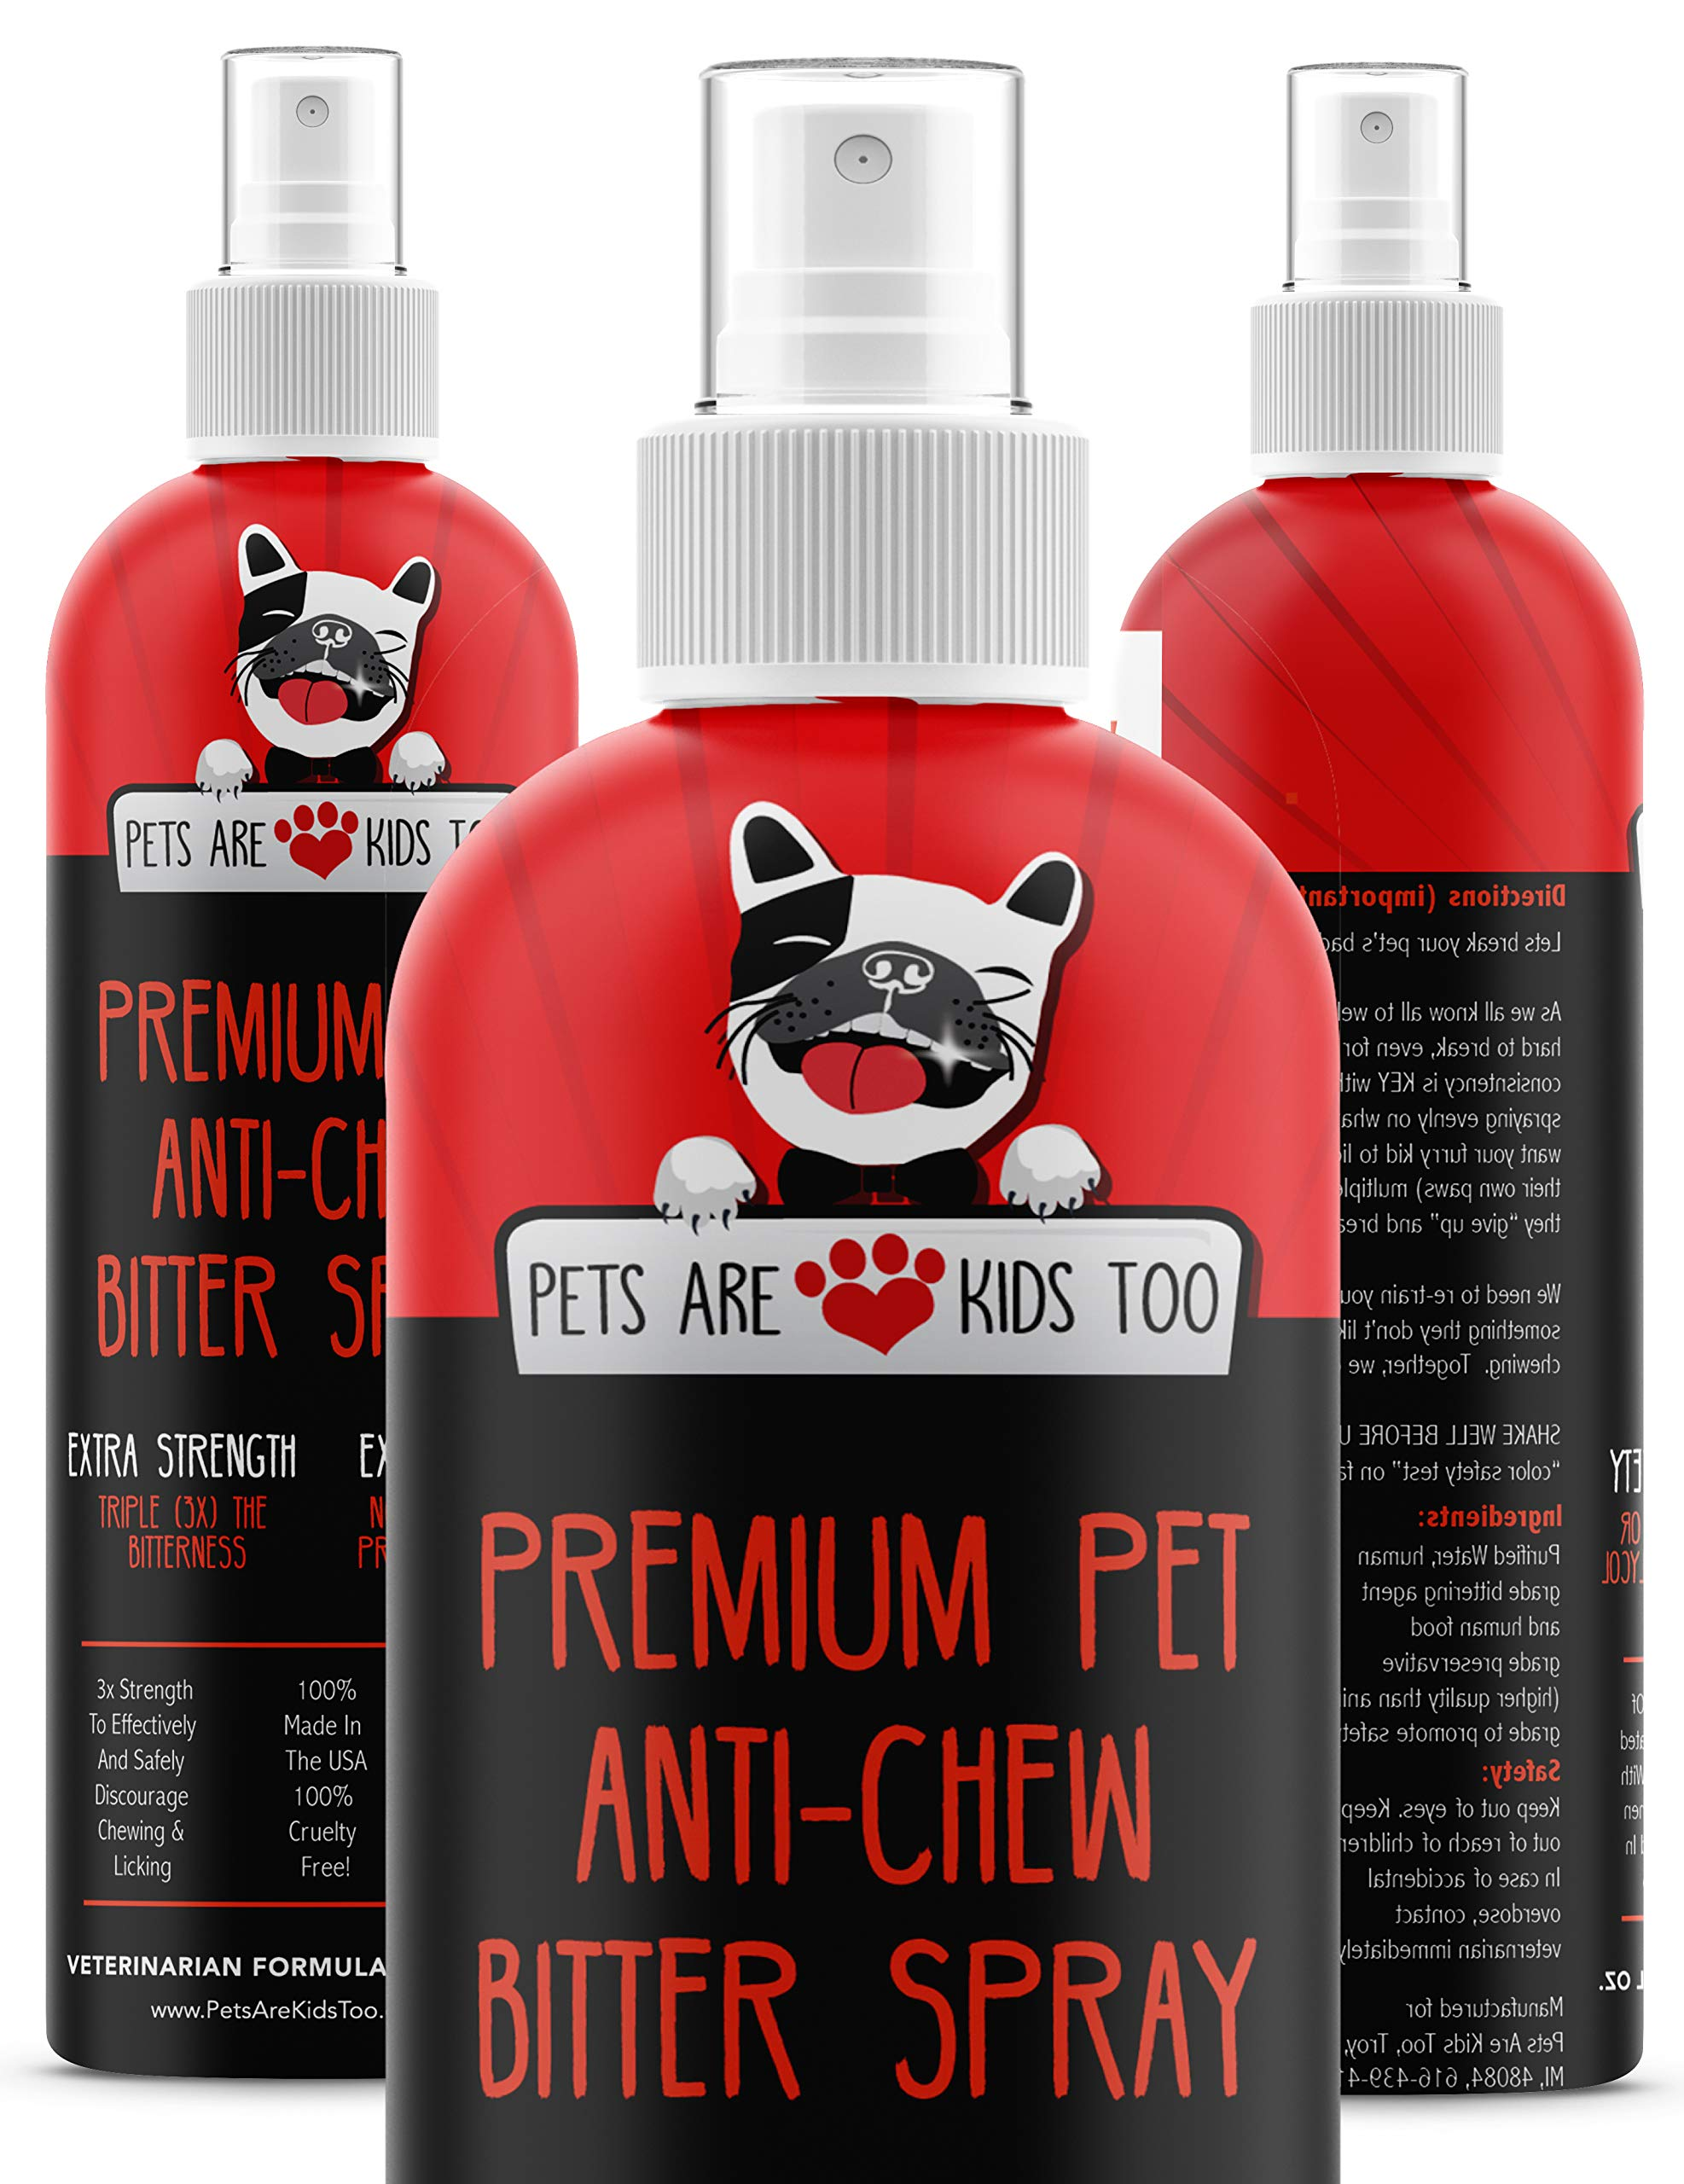 Anti Chew Dog Training Spray: No Chew Bitter Spray and Pet Deterrent for Dogs and Cats - Behavior Correction to Stop Chewing and Licking - Safe for Furniture, Paws and Bandages - 8 Oz (1 Bottle) by Pets Are Kids Too